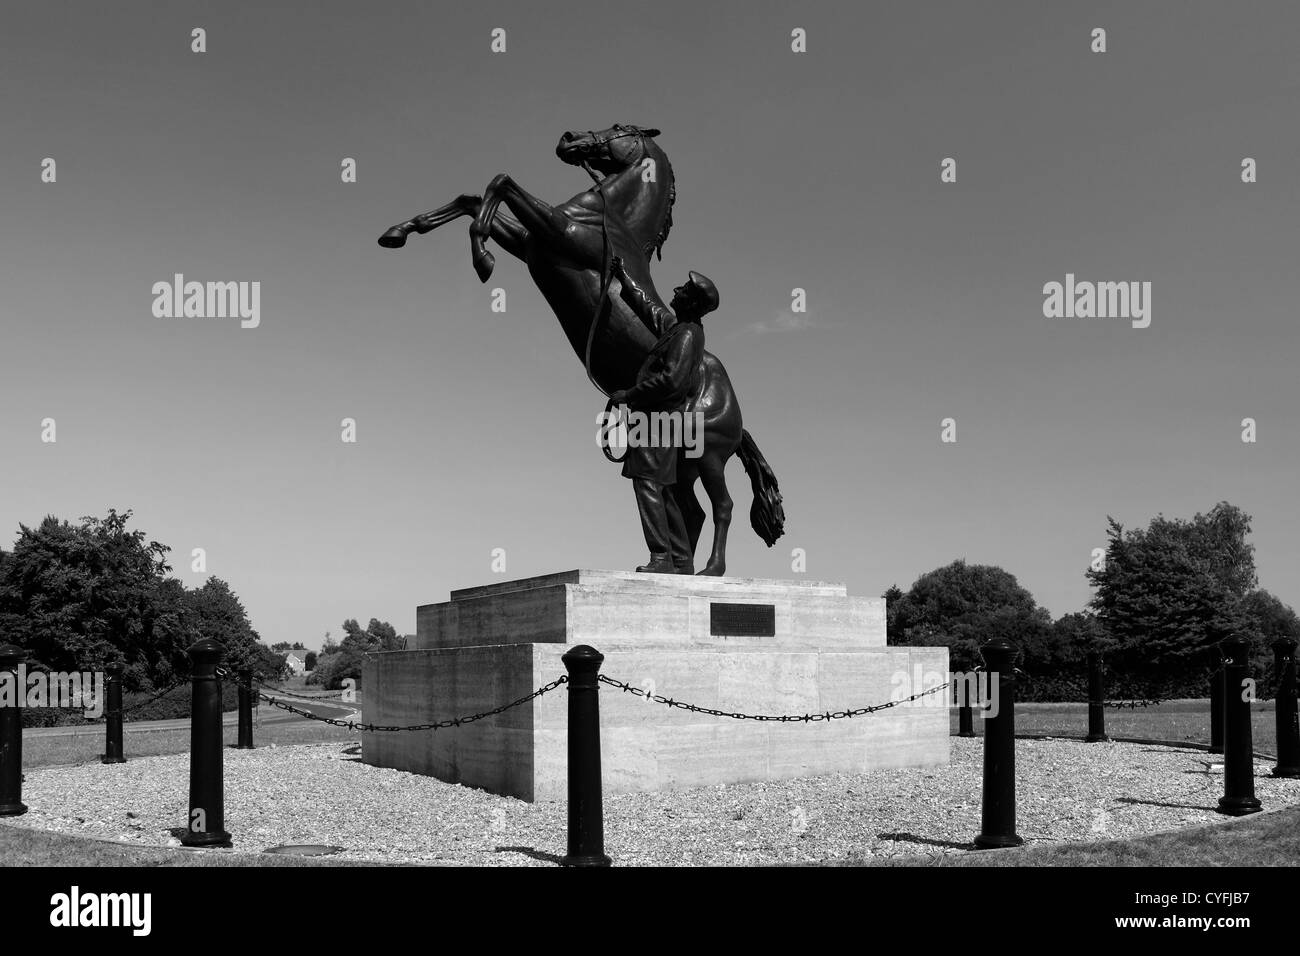 Black and White image,The Newmarket Stallion statue by Marcia Astor and Allan Sly, at Newmarket racecourse, Suffolk, - Stock Image